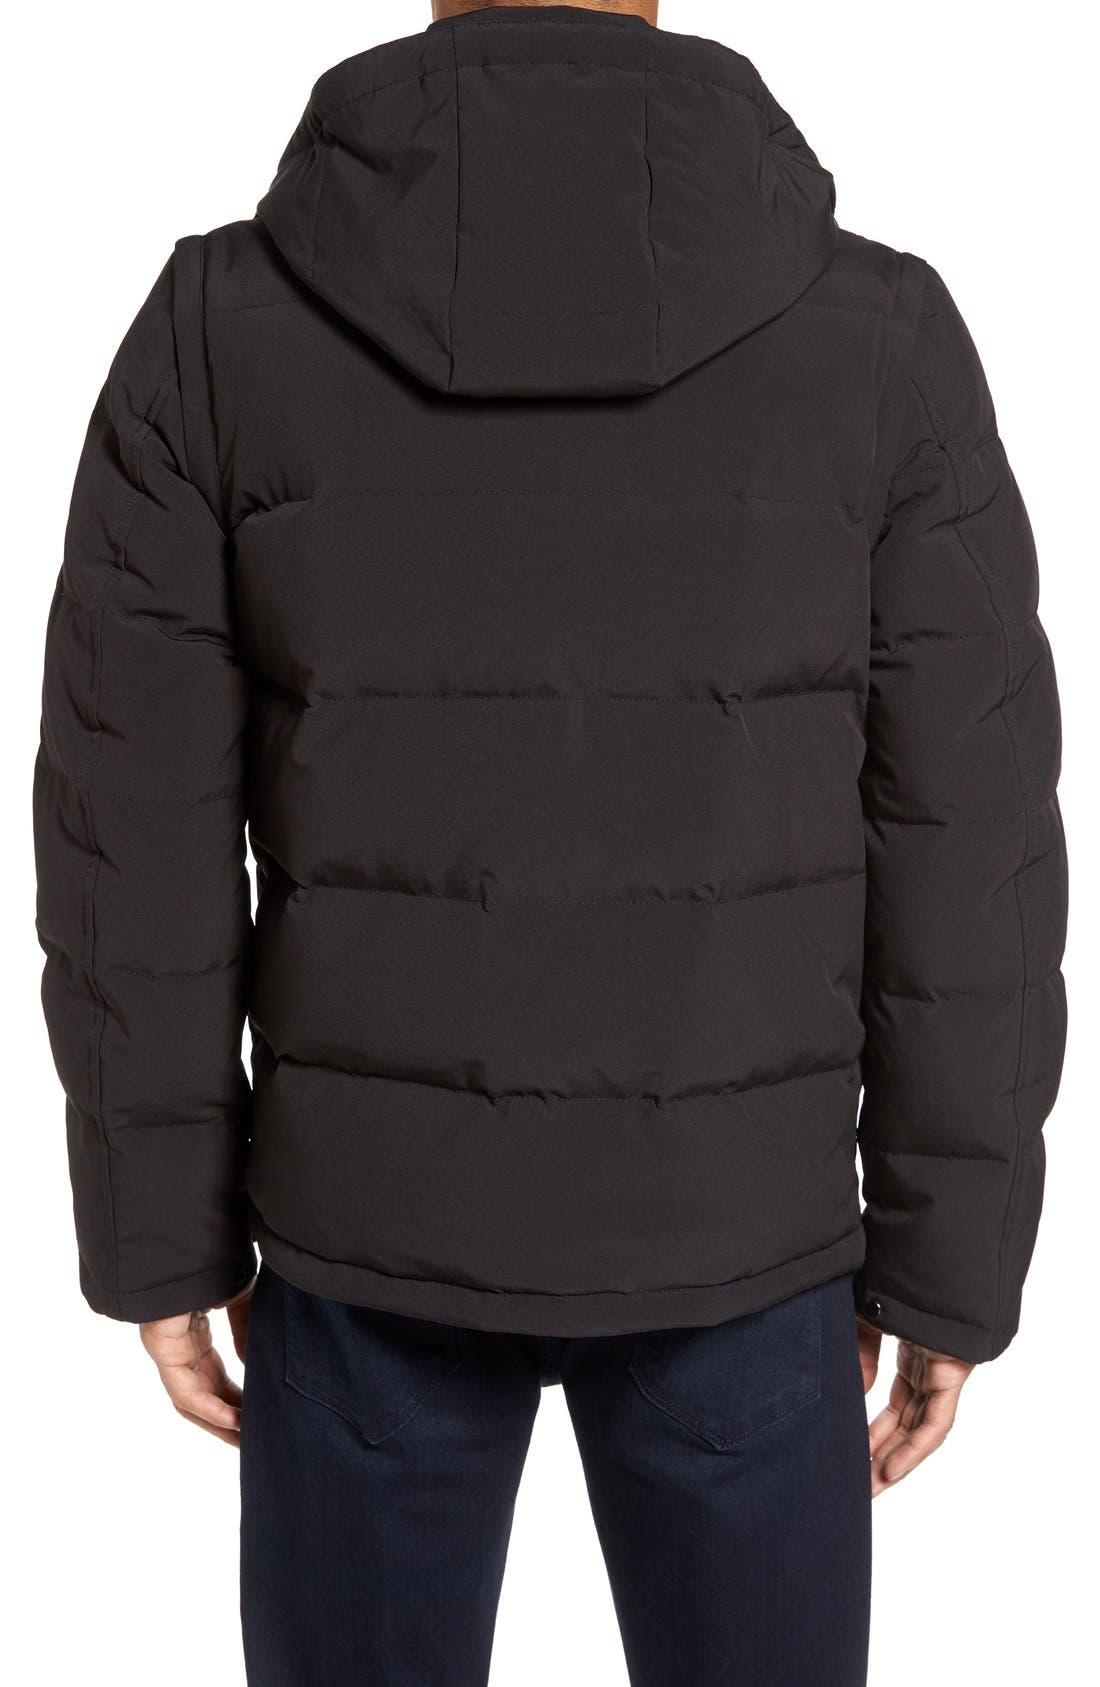 Convertible Down & Feather Puffer Jacket,                             Alternate thumbnail 2, color,                             001